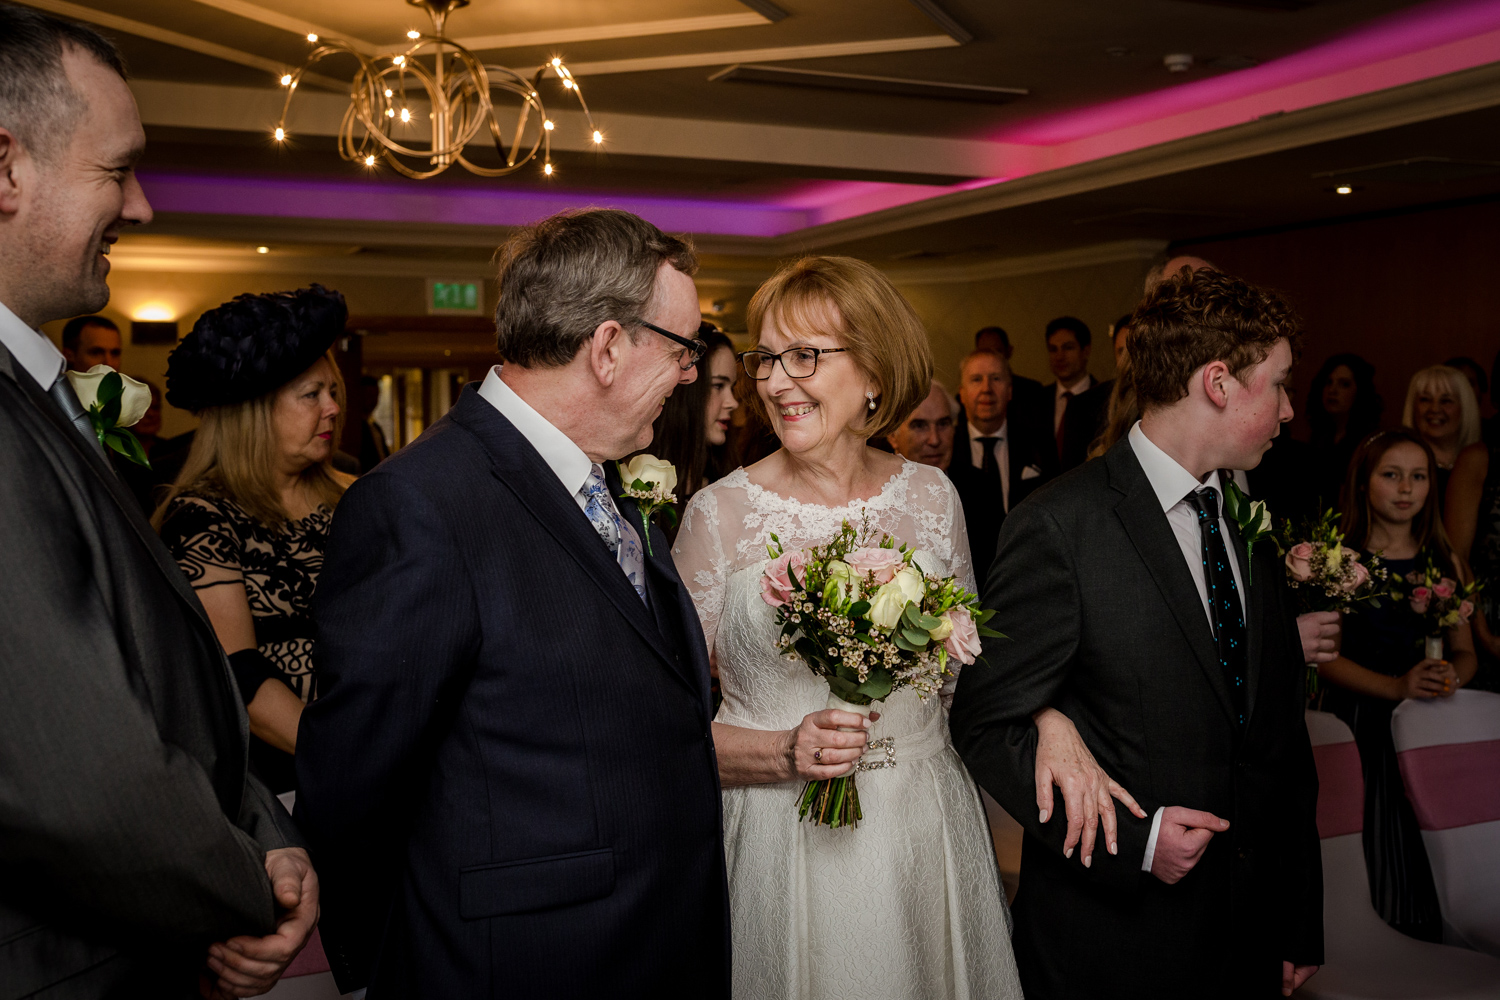 The ceremony at the Cottons Hotel and Spa in Knutsford